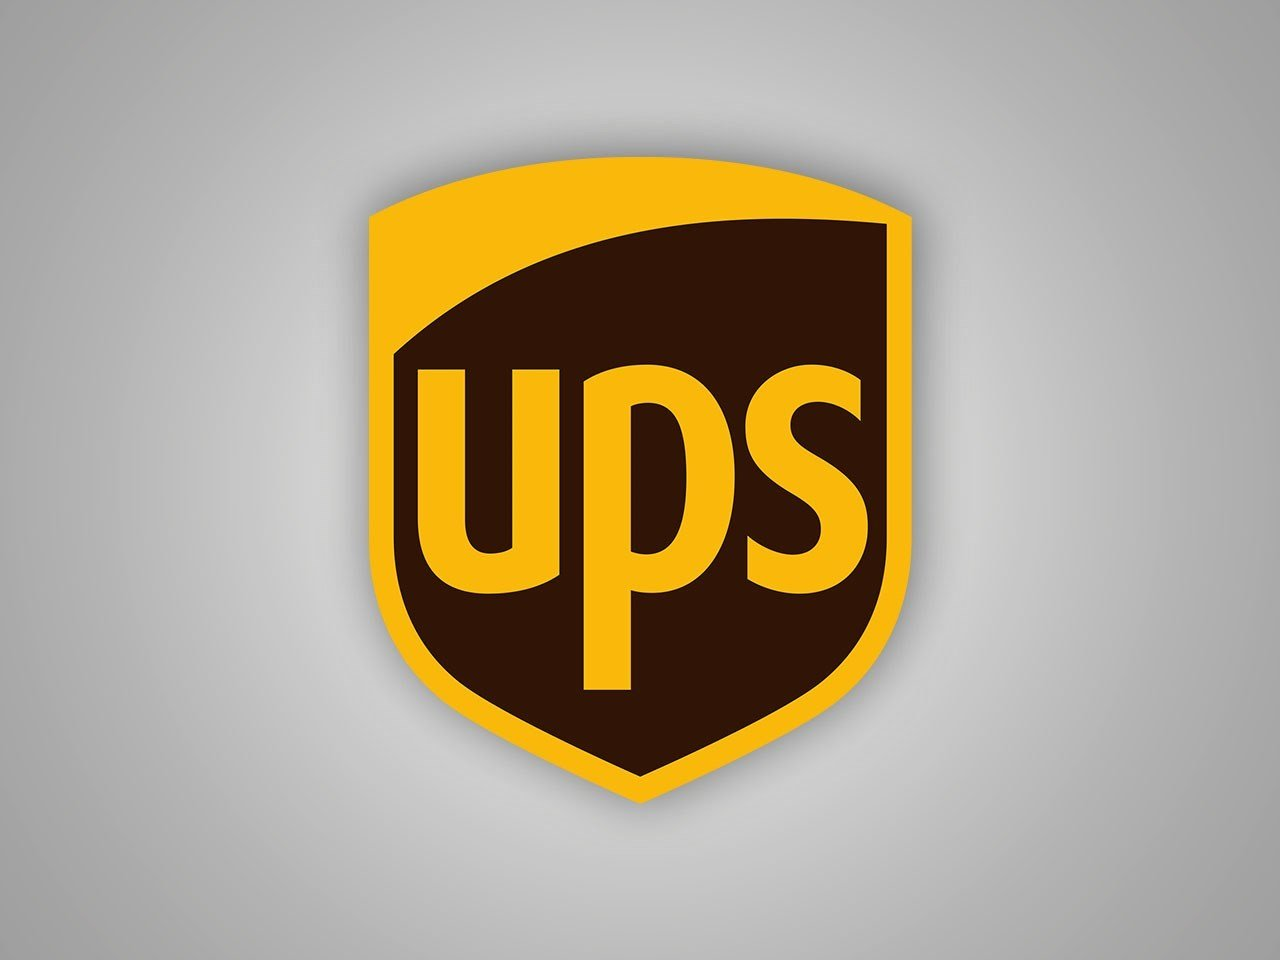 Some UPS orders delayed by online shopping surge backlog